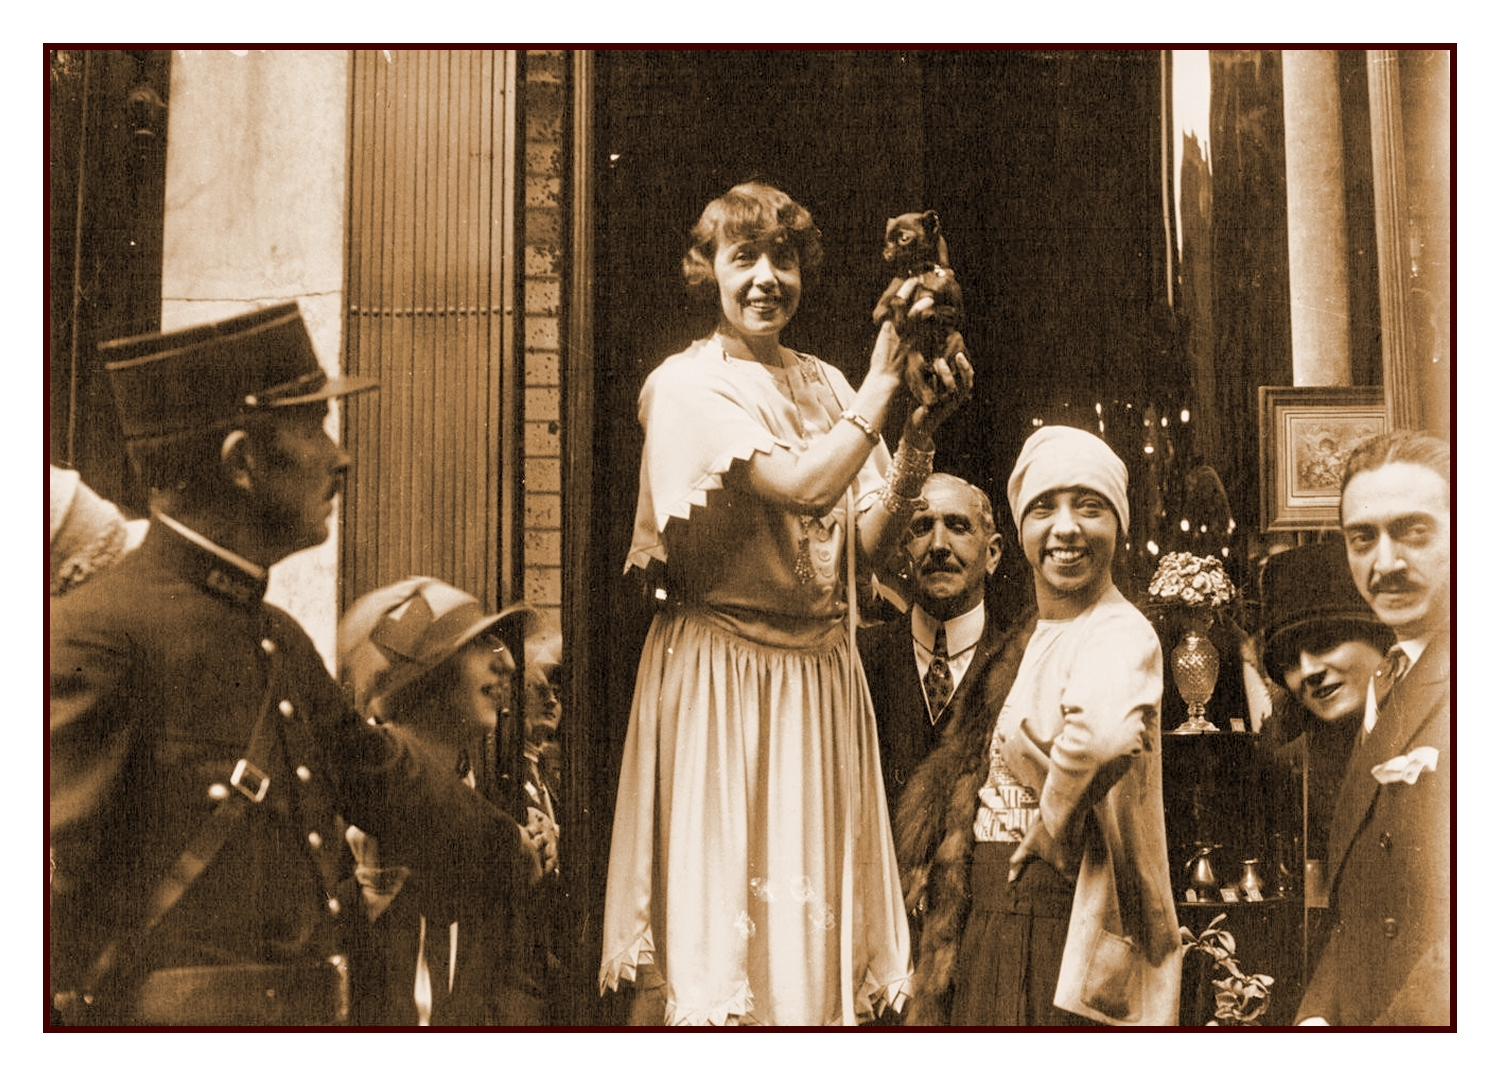 French actress and singer, Mistinguett (on left) and Josephine BakerBibliothèque nationale de France